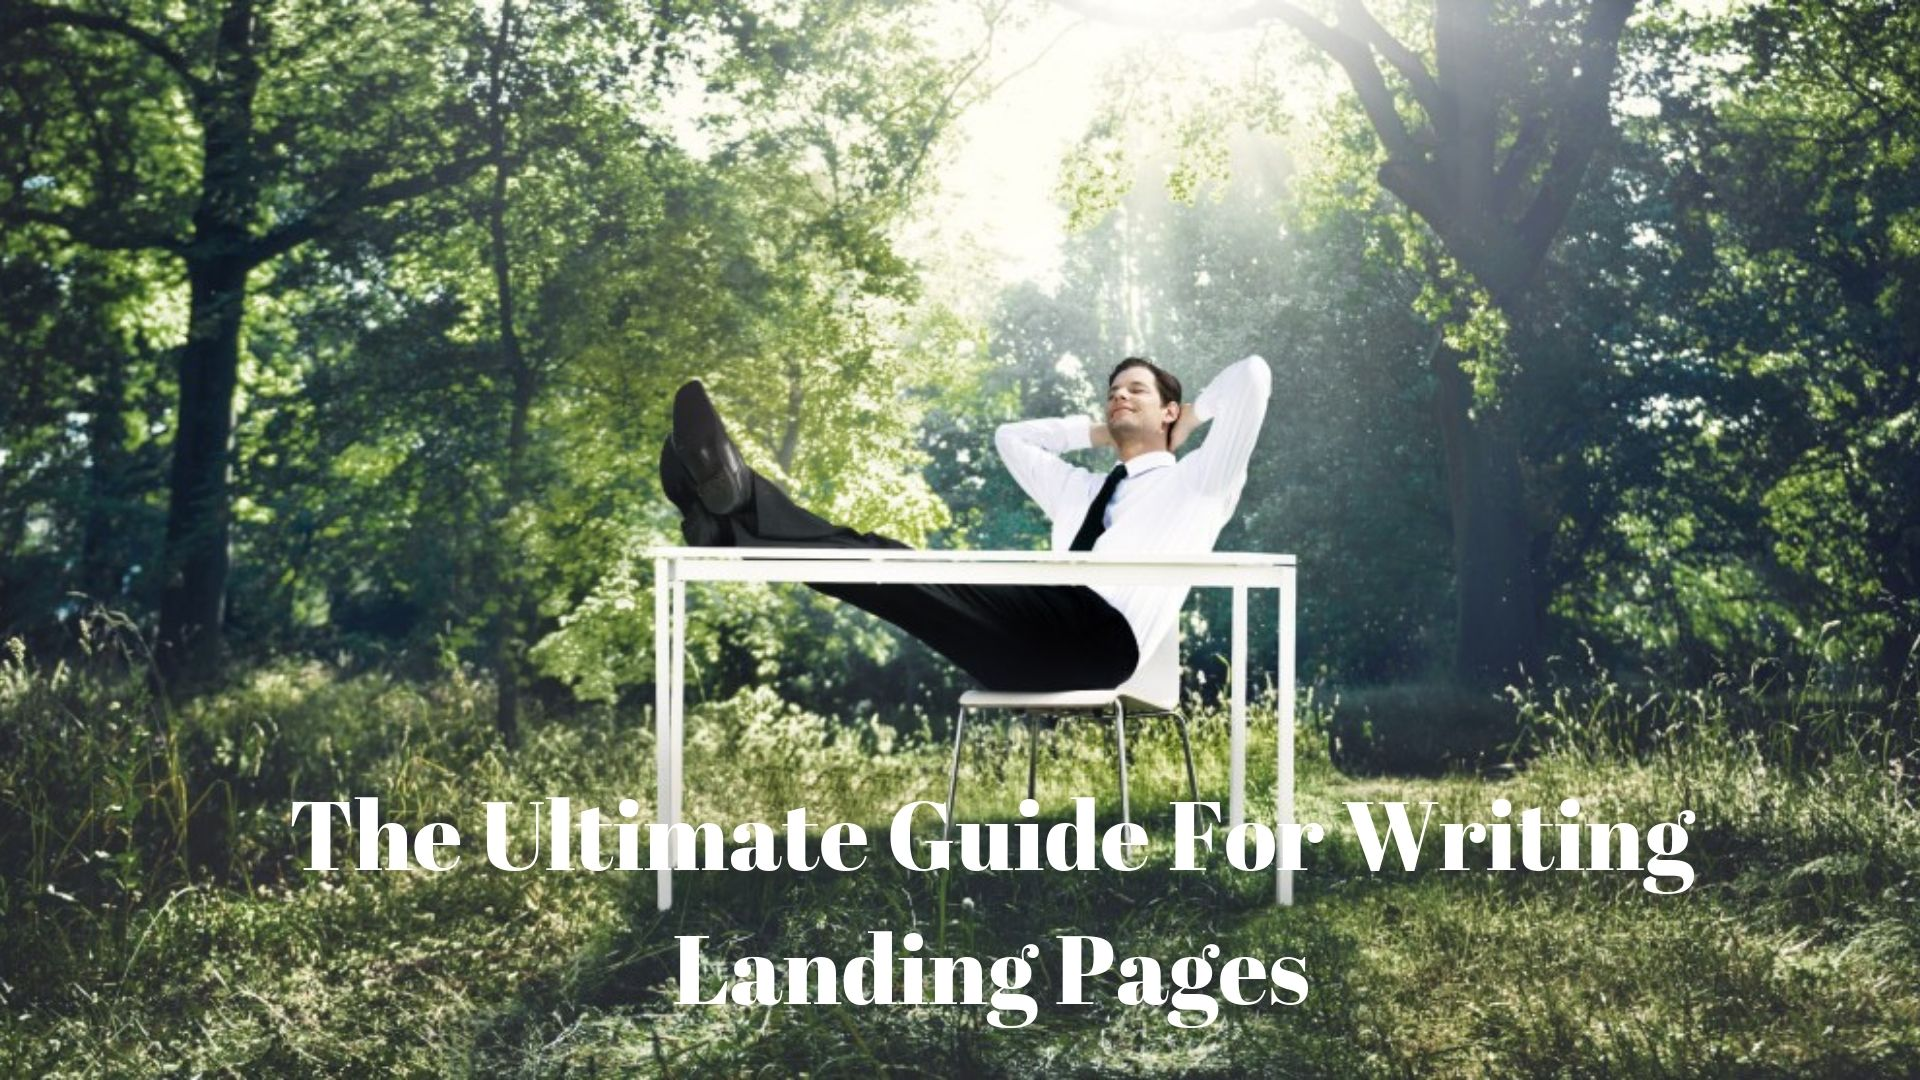 The Ultimate Guide For Writing Landing Pages